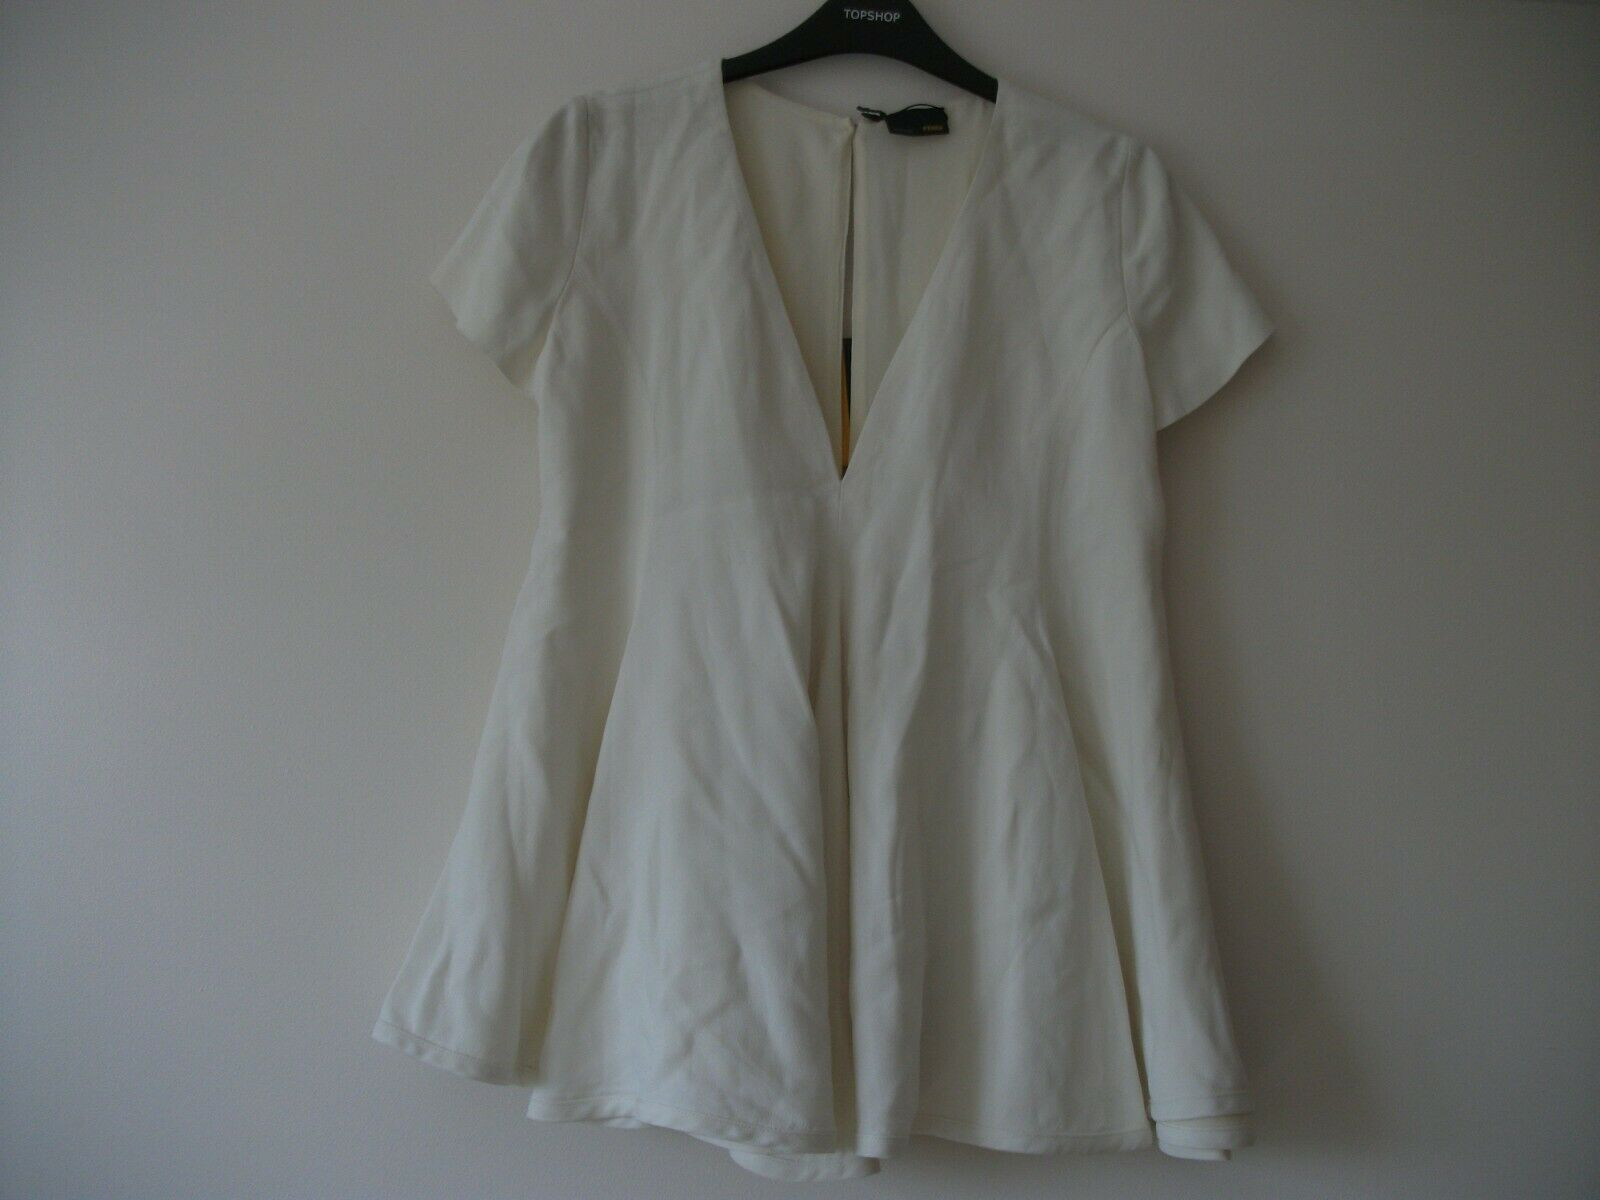 Fendi crepe top size 42, cream, lined, new with tags, not been worn.